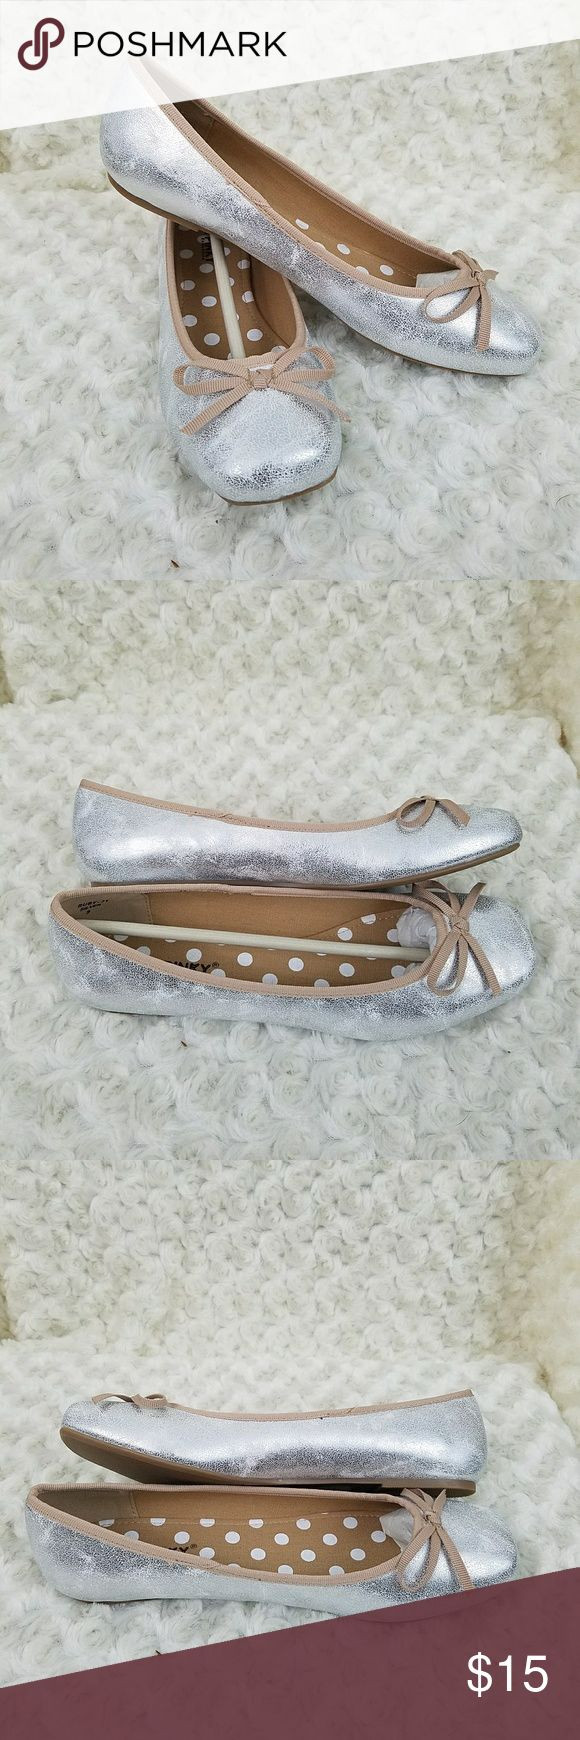 NWOT Silver and Tan Flats Adorable silver and tan flats by Via Pinky in Women's sz 9. Brand new never worn. Shoes Flats & Loafers